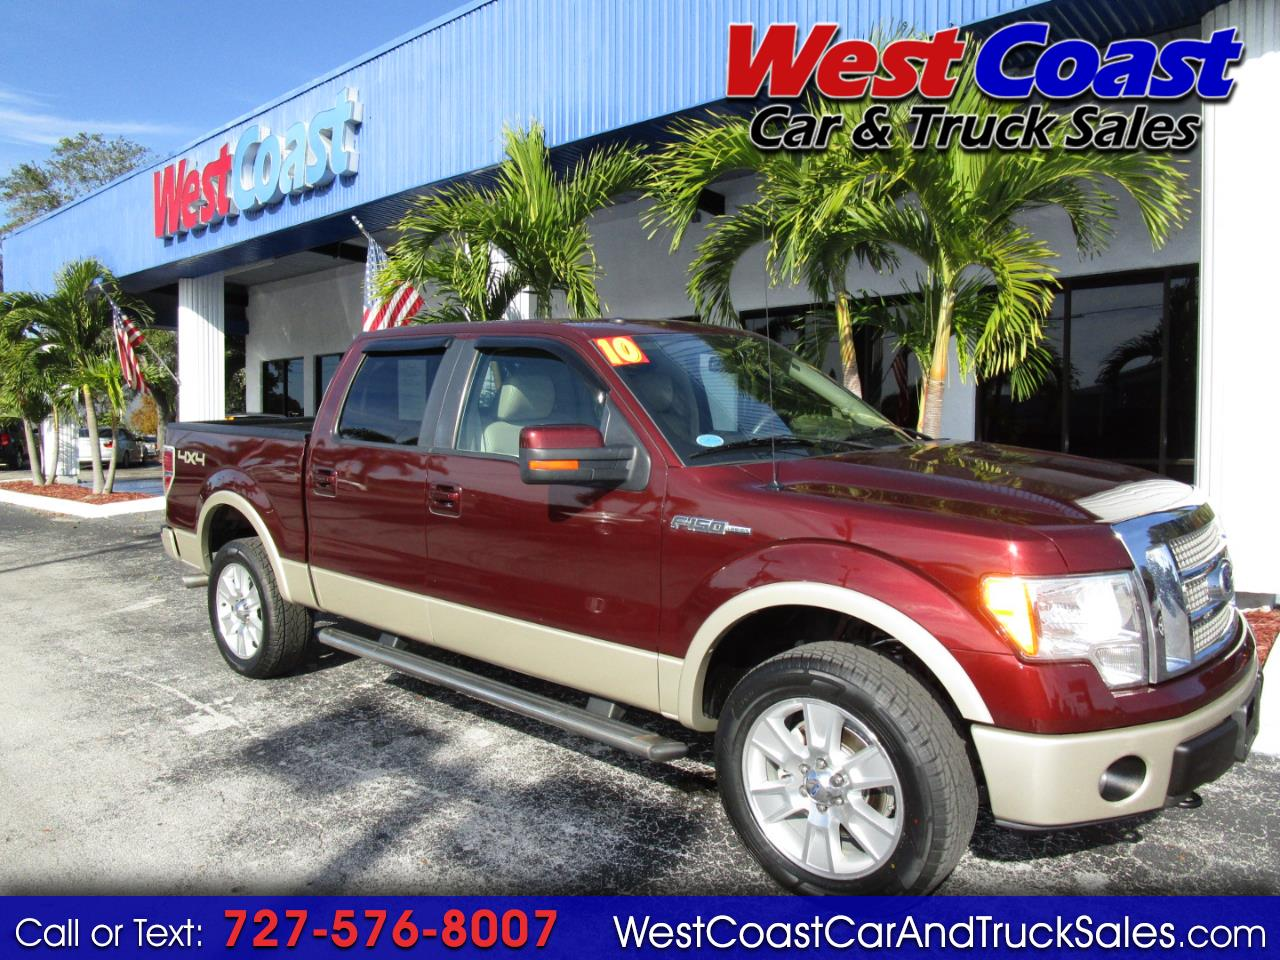 2010 Ford F-150 SuperCrew Lariat 4x4